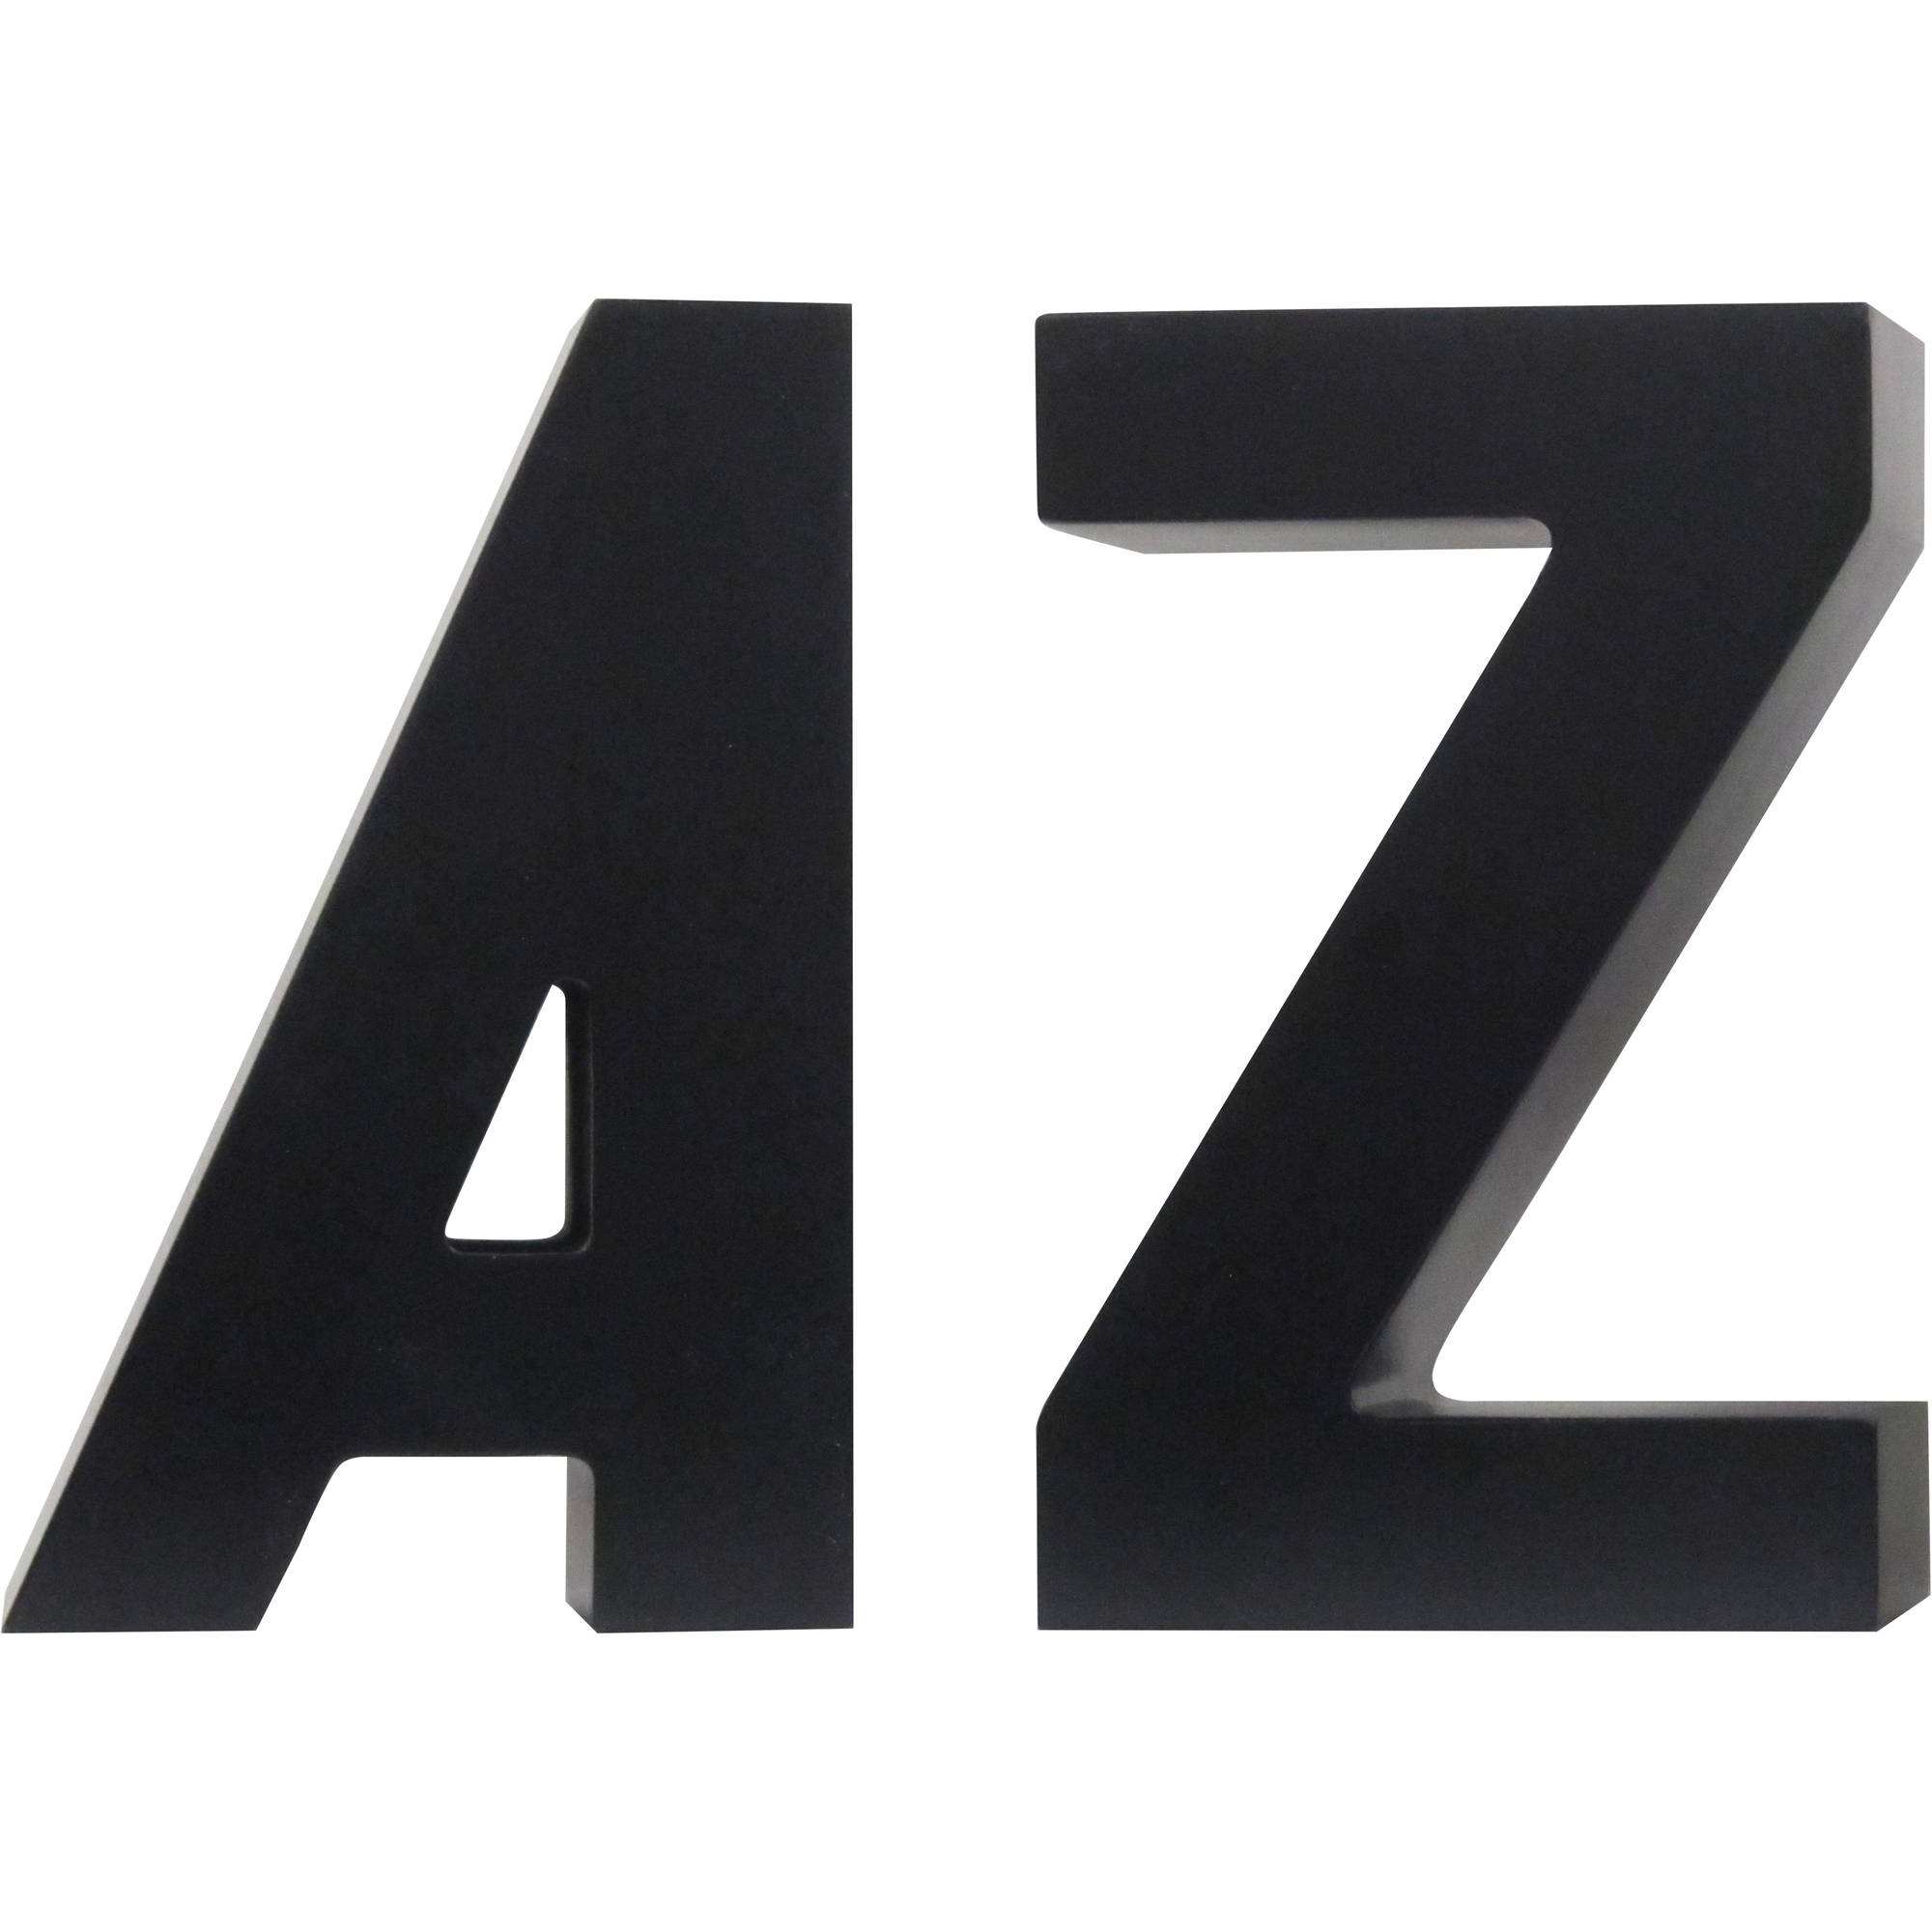 Decorative A to Z Black Bookends by Uniek